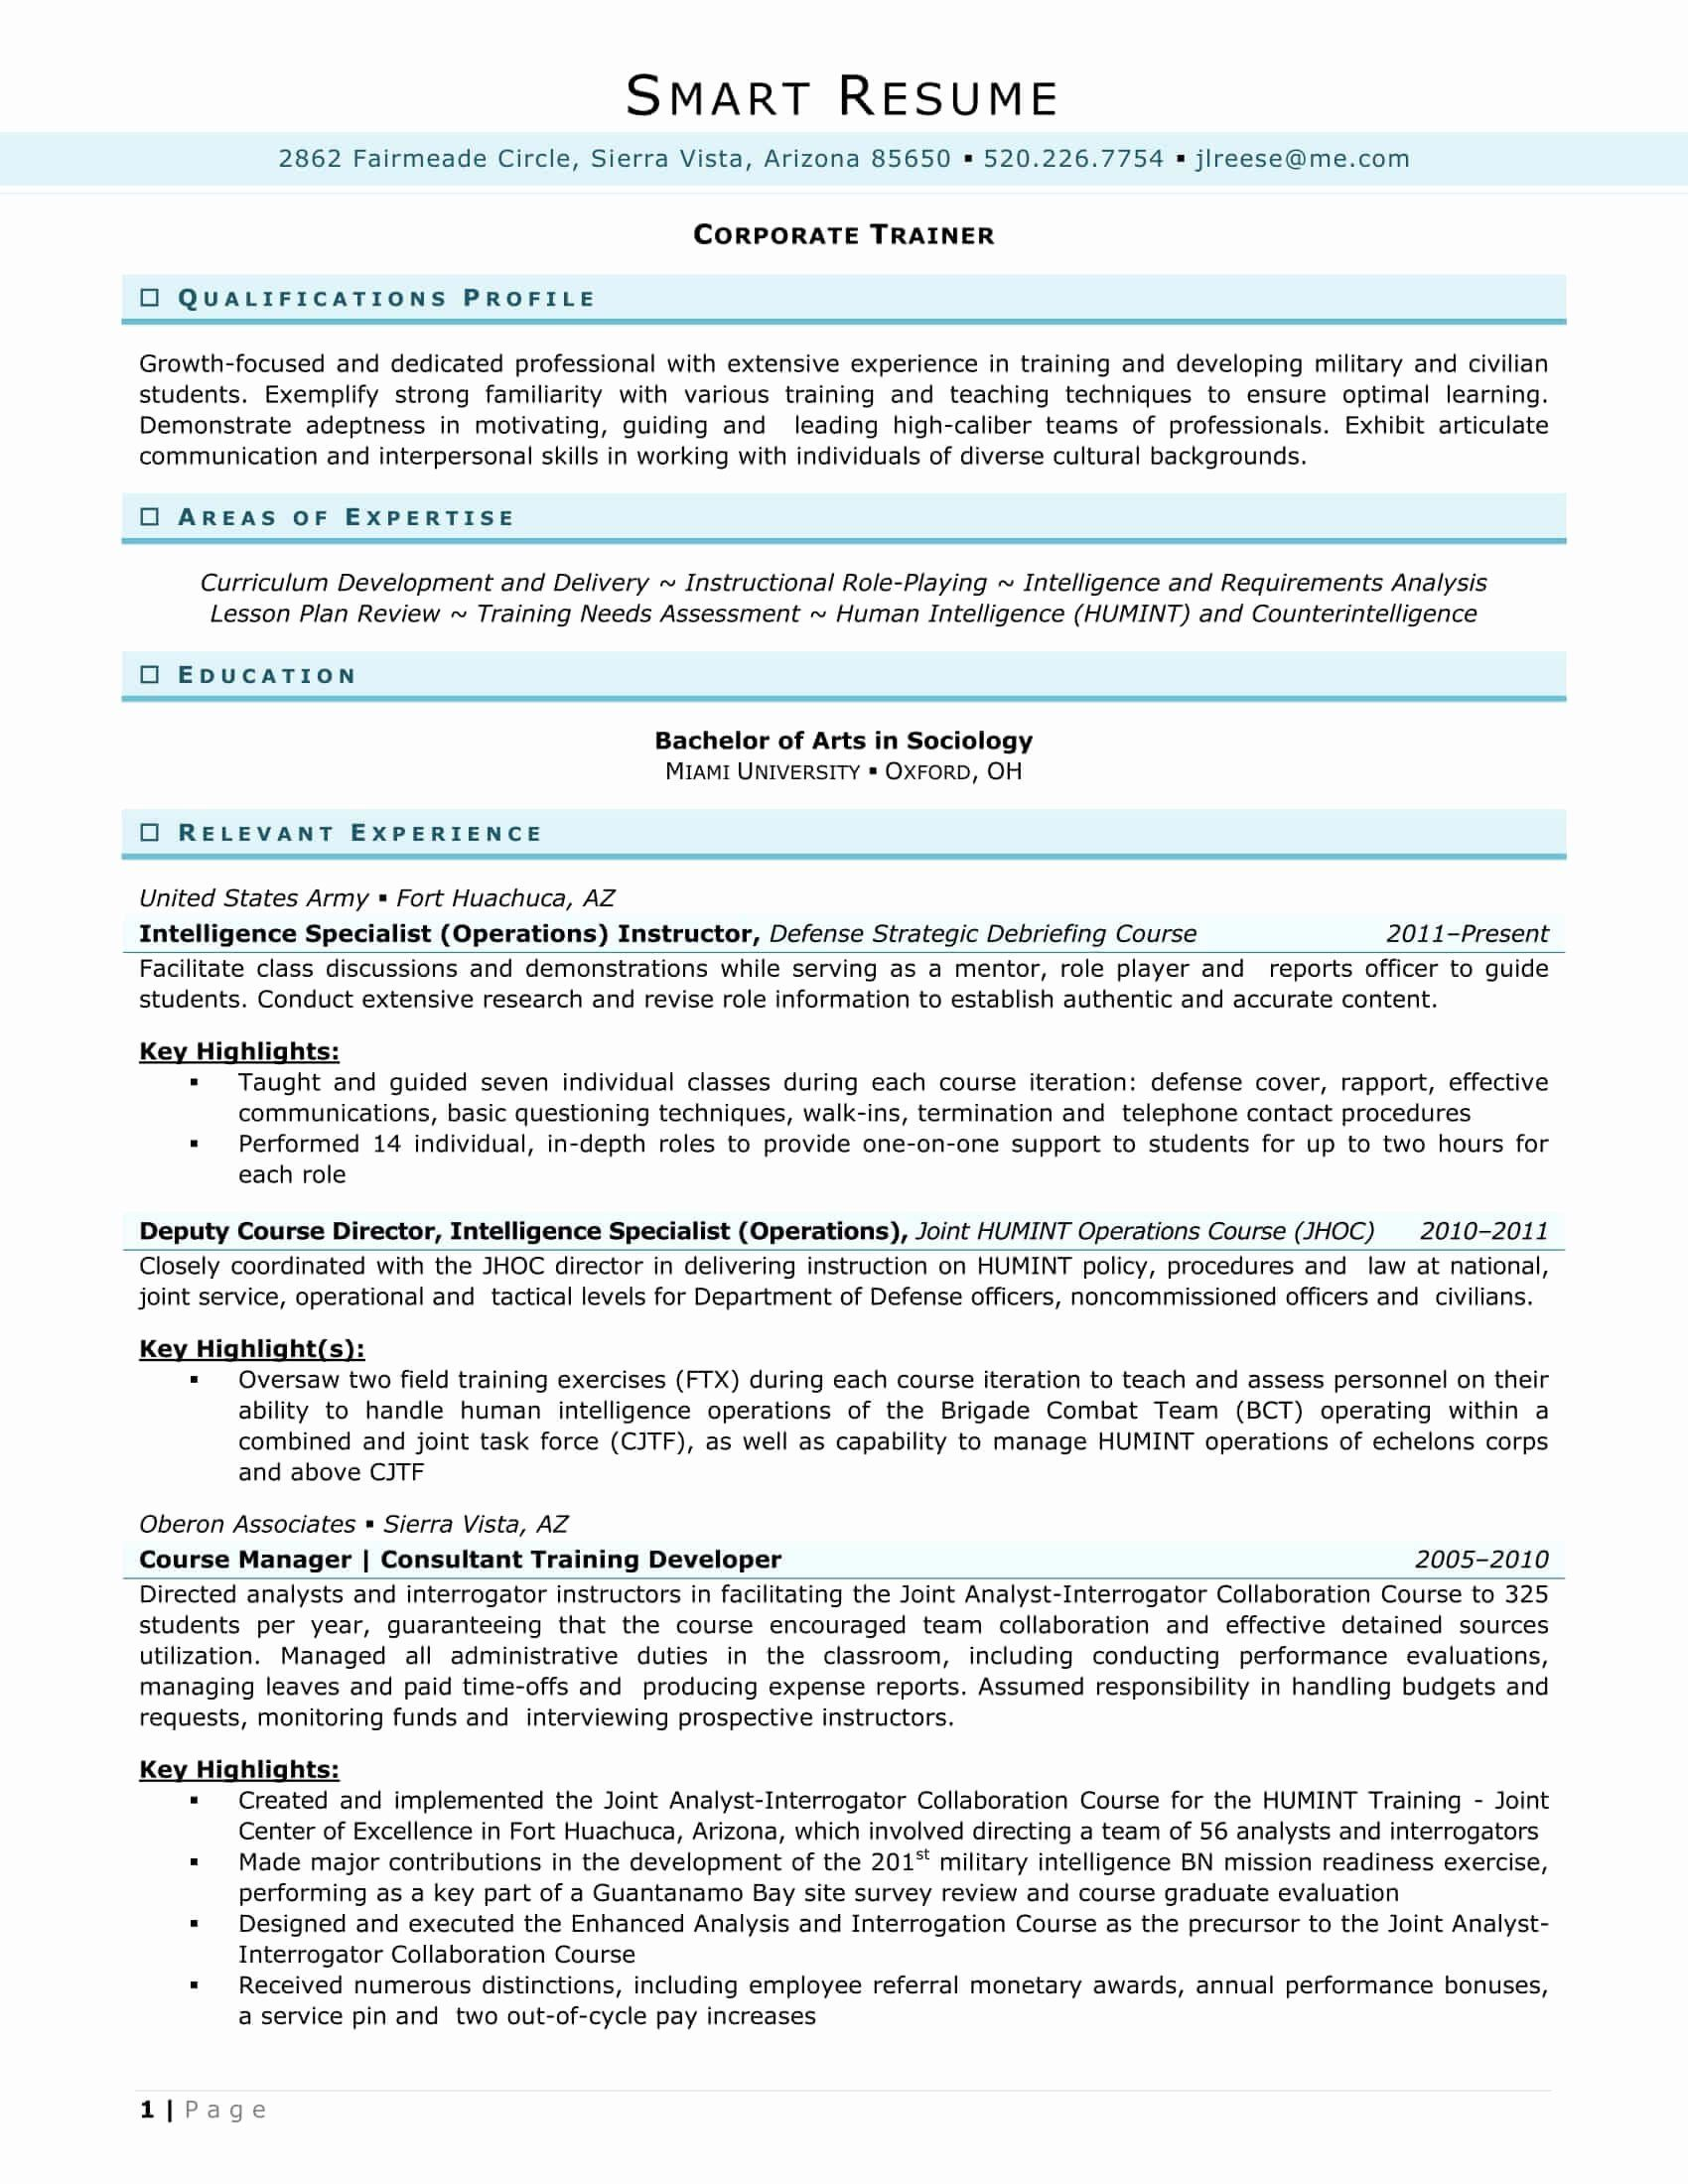 In House Counsel Resume Beautiful Samples How Smart Resume